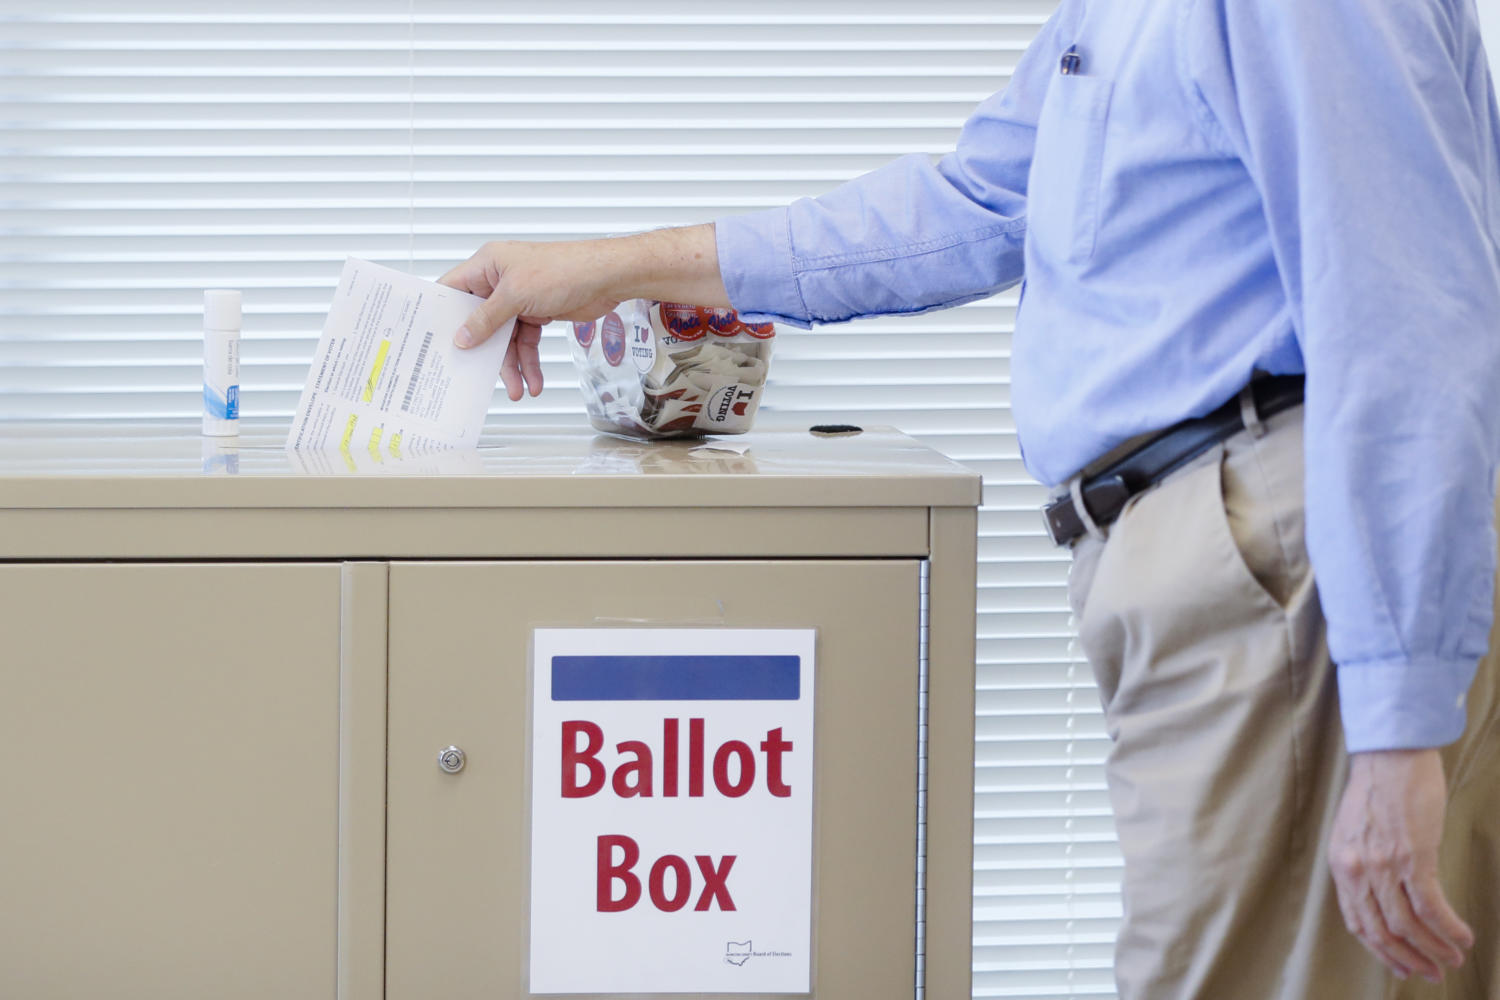 Editorial: Voting in local elections is important